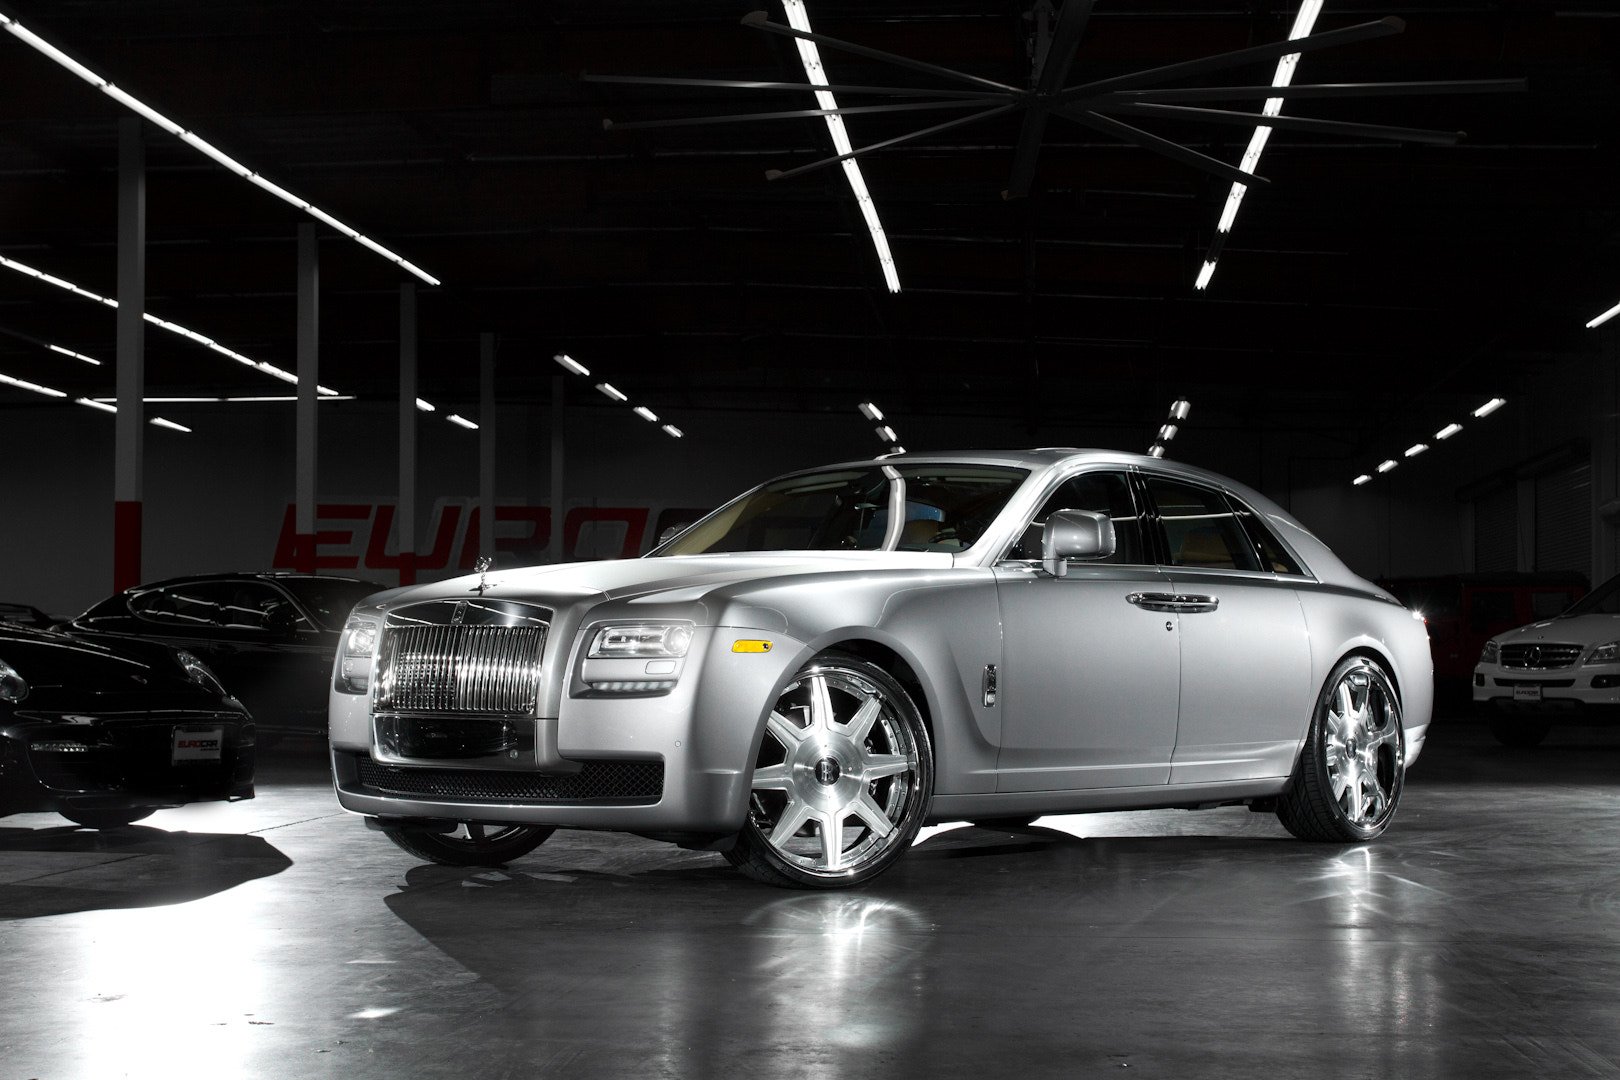 Photograph Rolls Royce Ghost by Philip Tieu on 500px